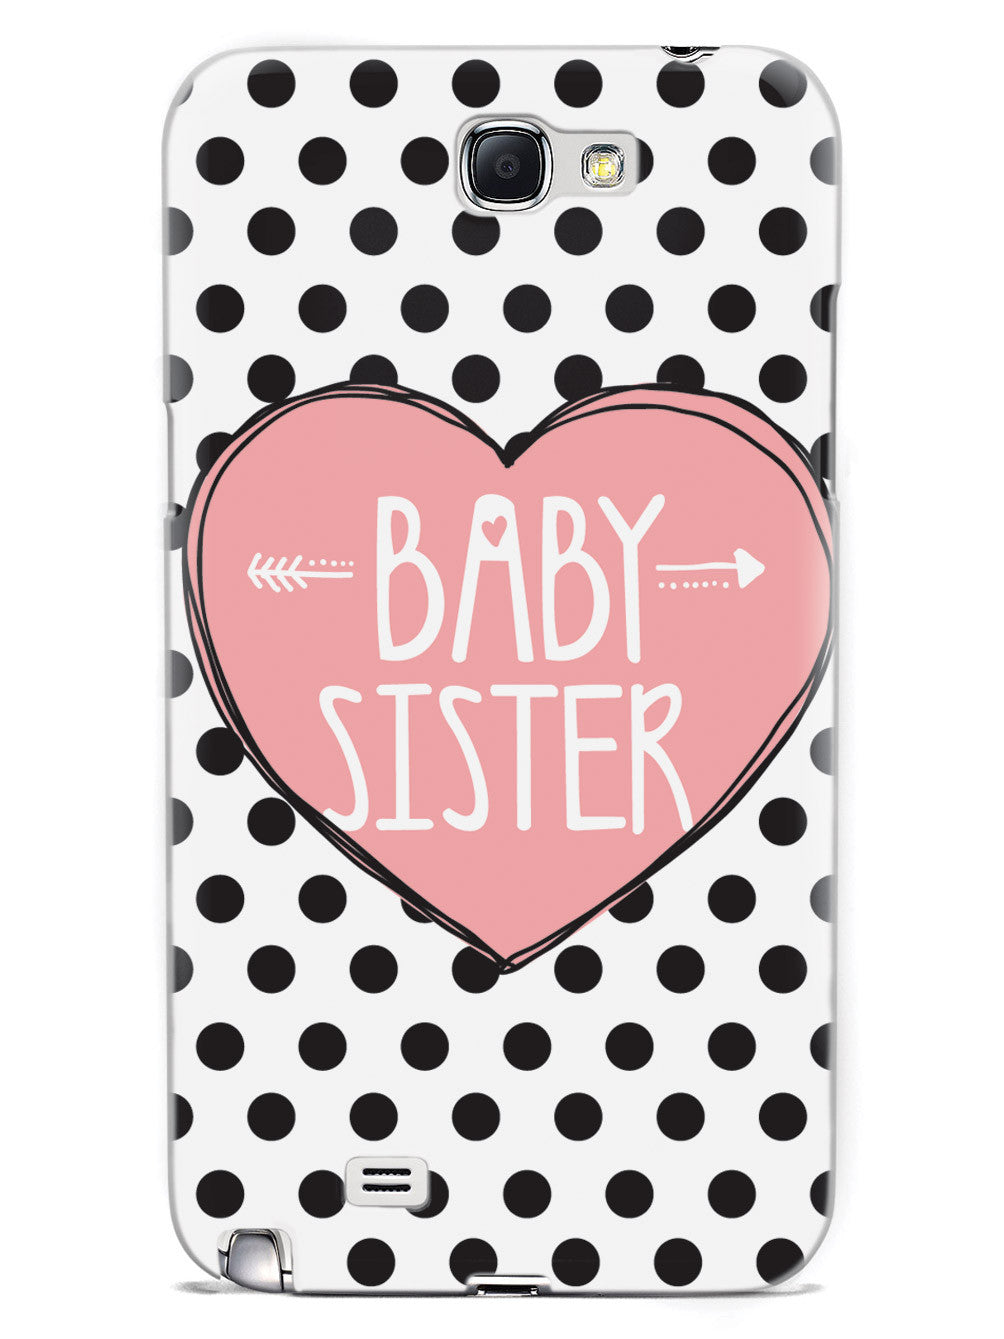 Sisterly Love - Baby Sister - Polka Dots Case